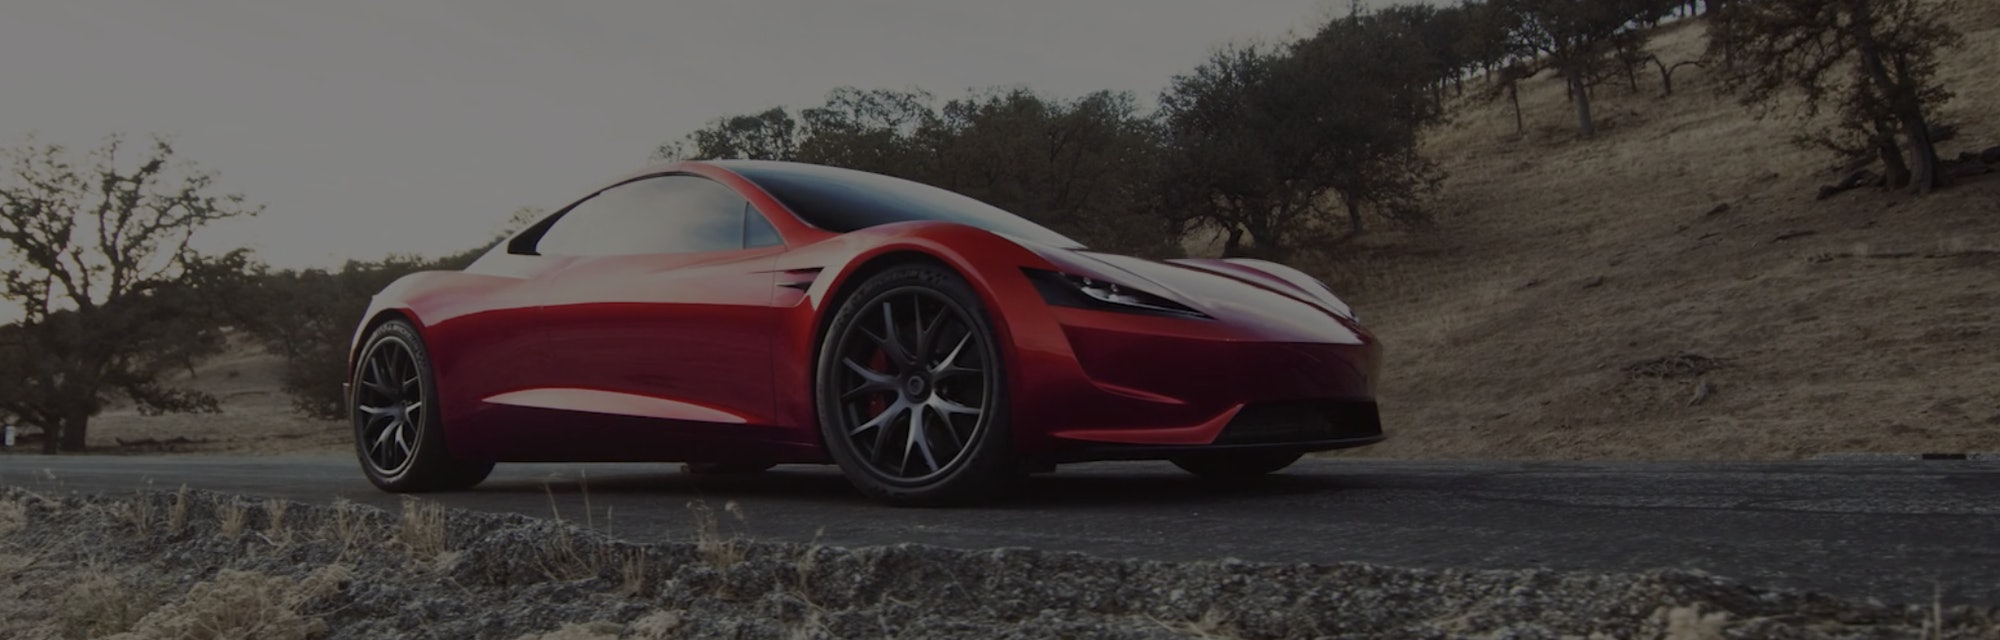 Tesla CEO Elon Musk says the Roadster supercar will see further design changes before its 2022 relea...